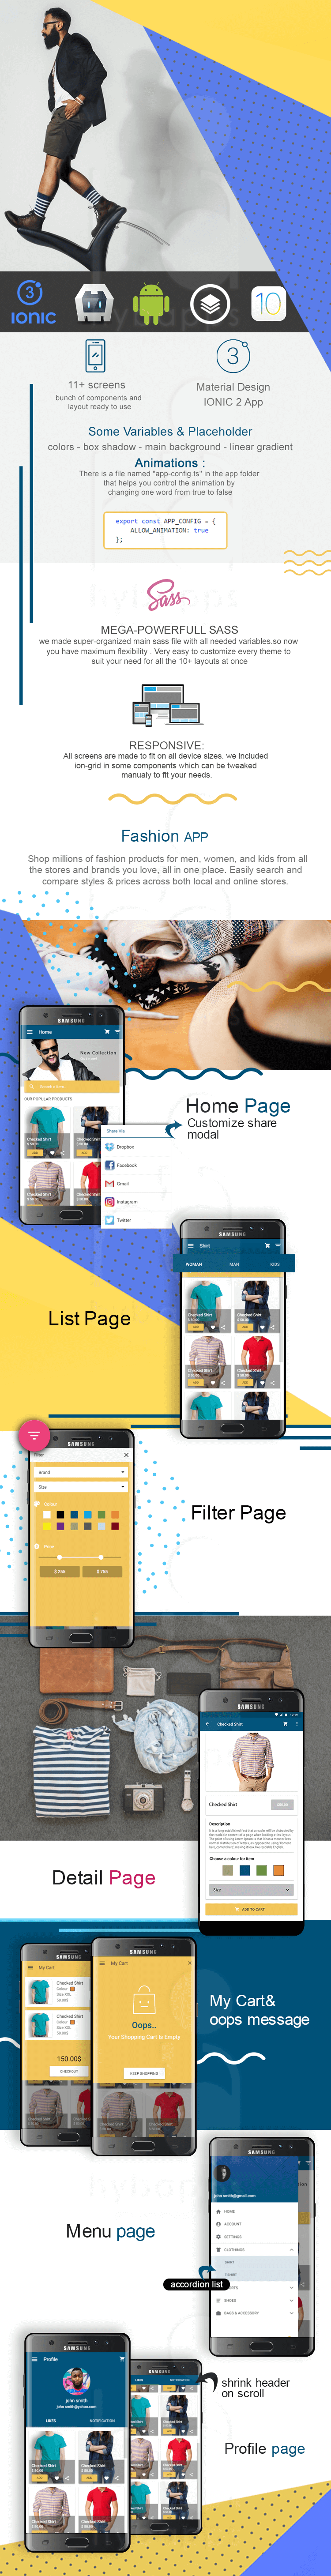 My Fashion-ionic app theme